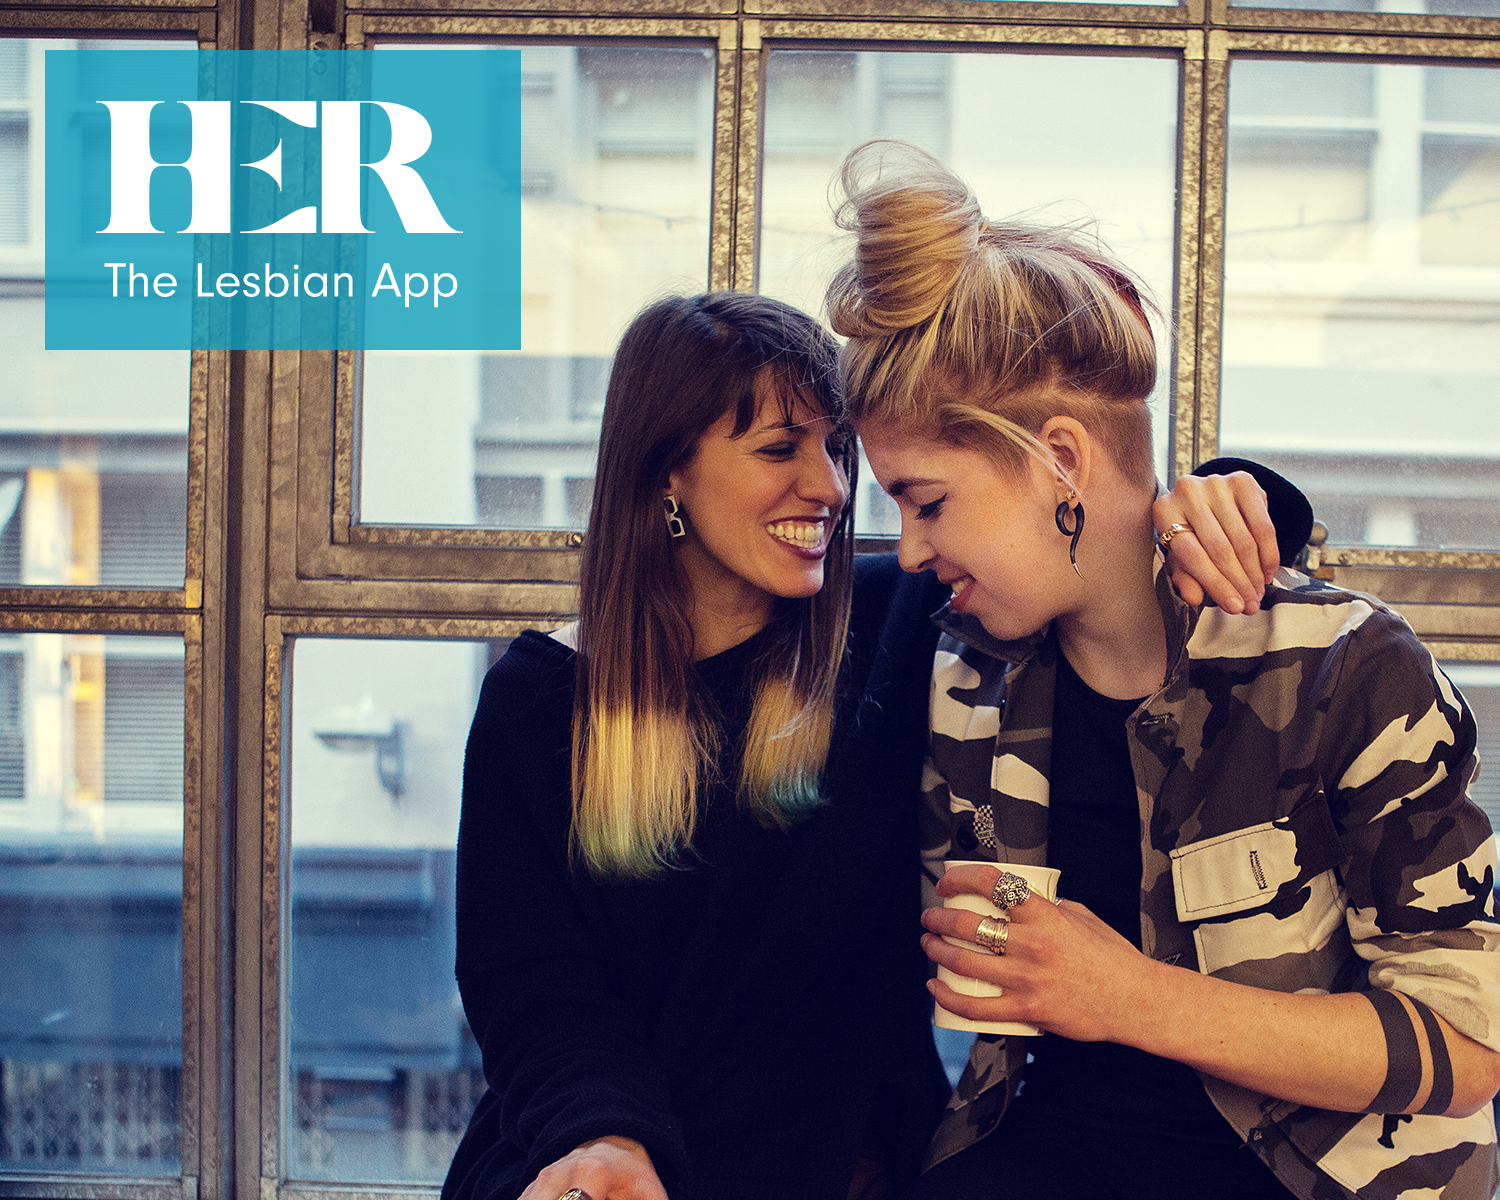 weare lesbian singles Her is the biggest (and best) app for lesbian, bisexual and queer women worldwide surround yourself with new awesome friends, go on dates, find local lgbtq events or just chat away.